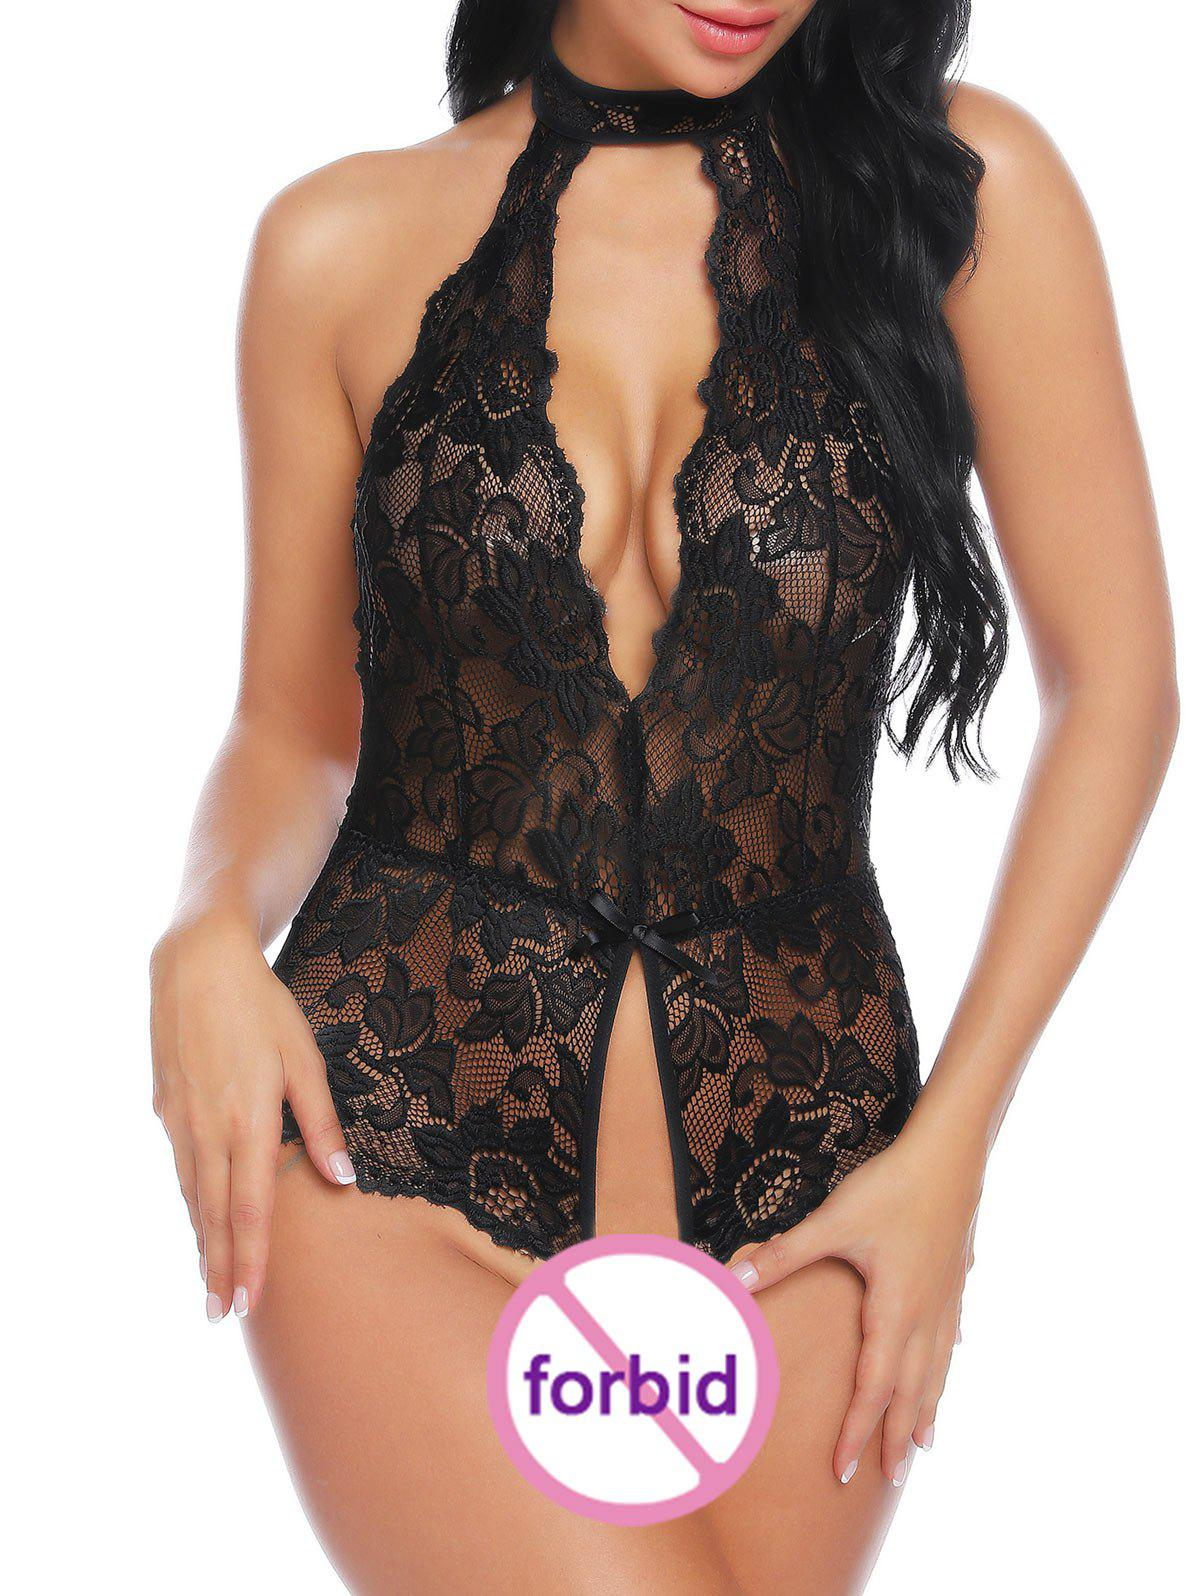 Backless Ouvrir Crotch Sheer Lace Teddy - Noir S